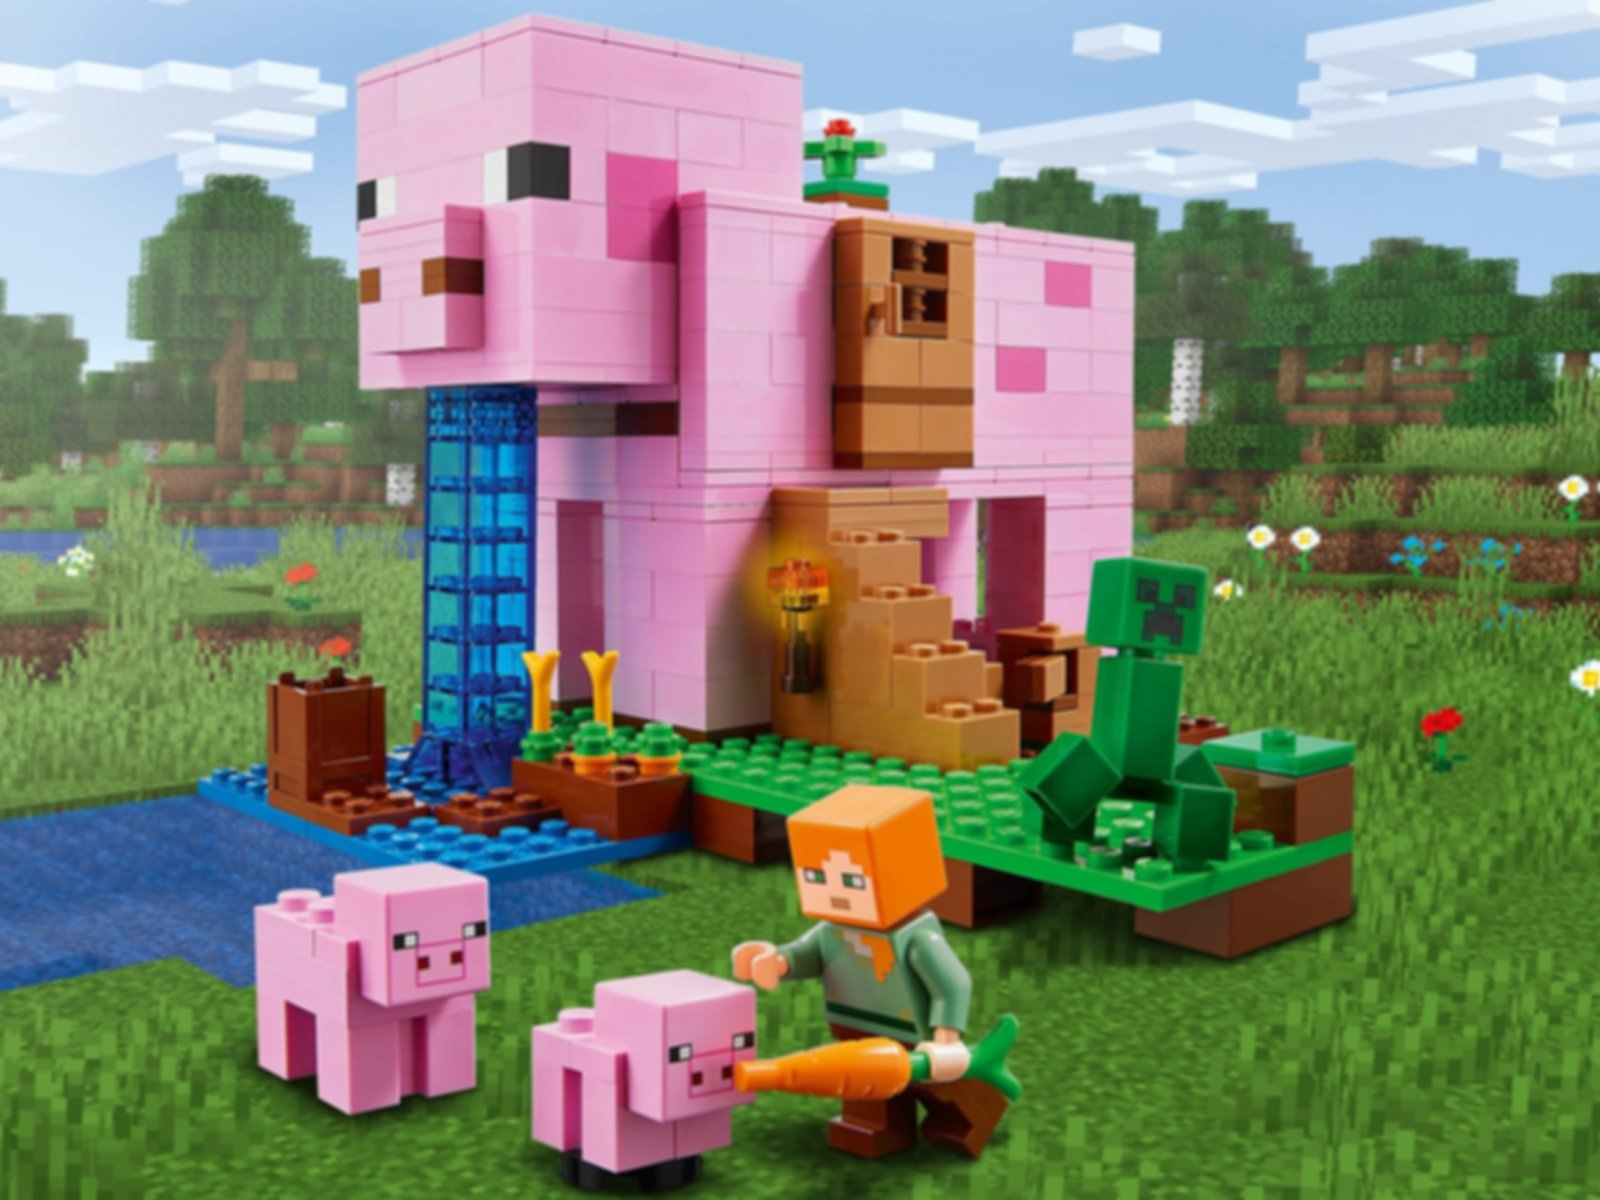 The Pig House gameplay